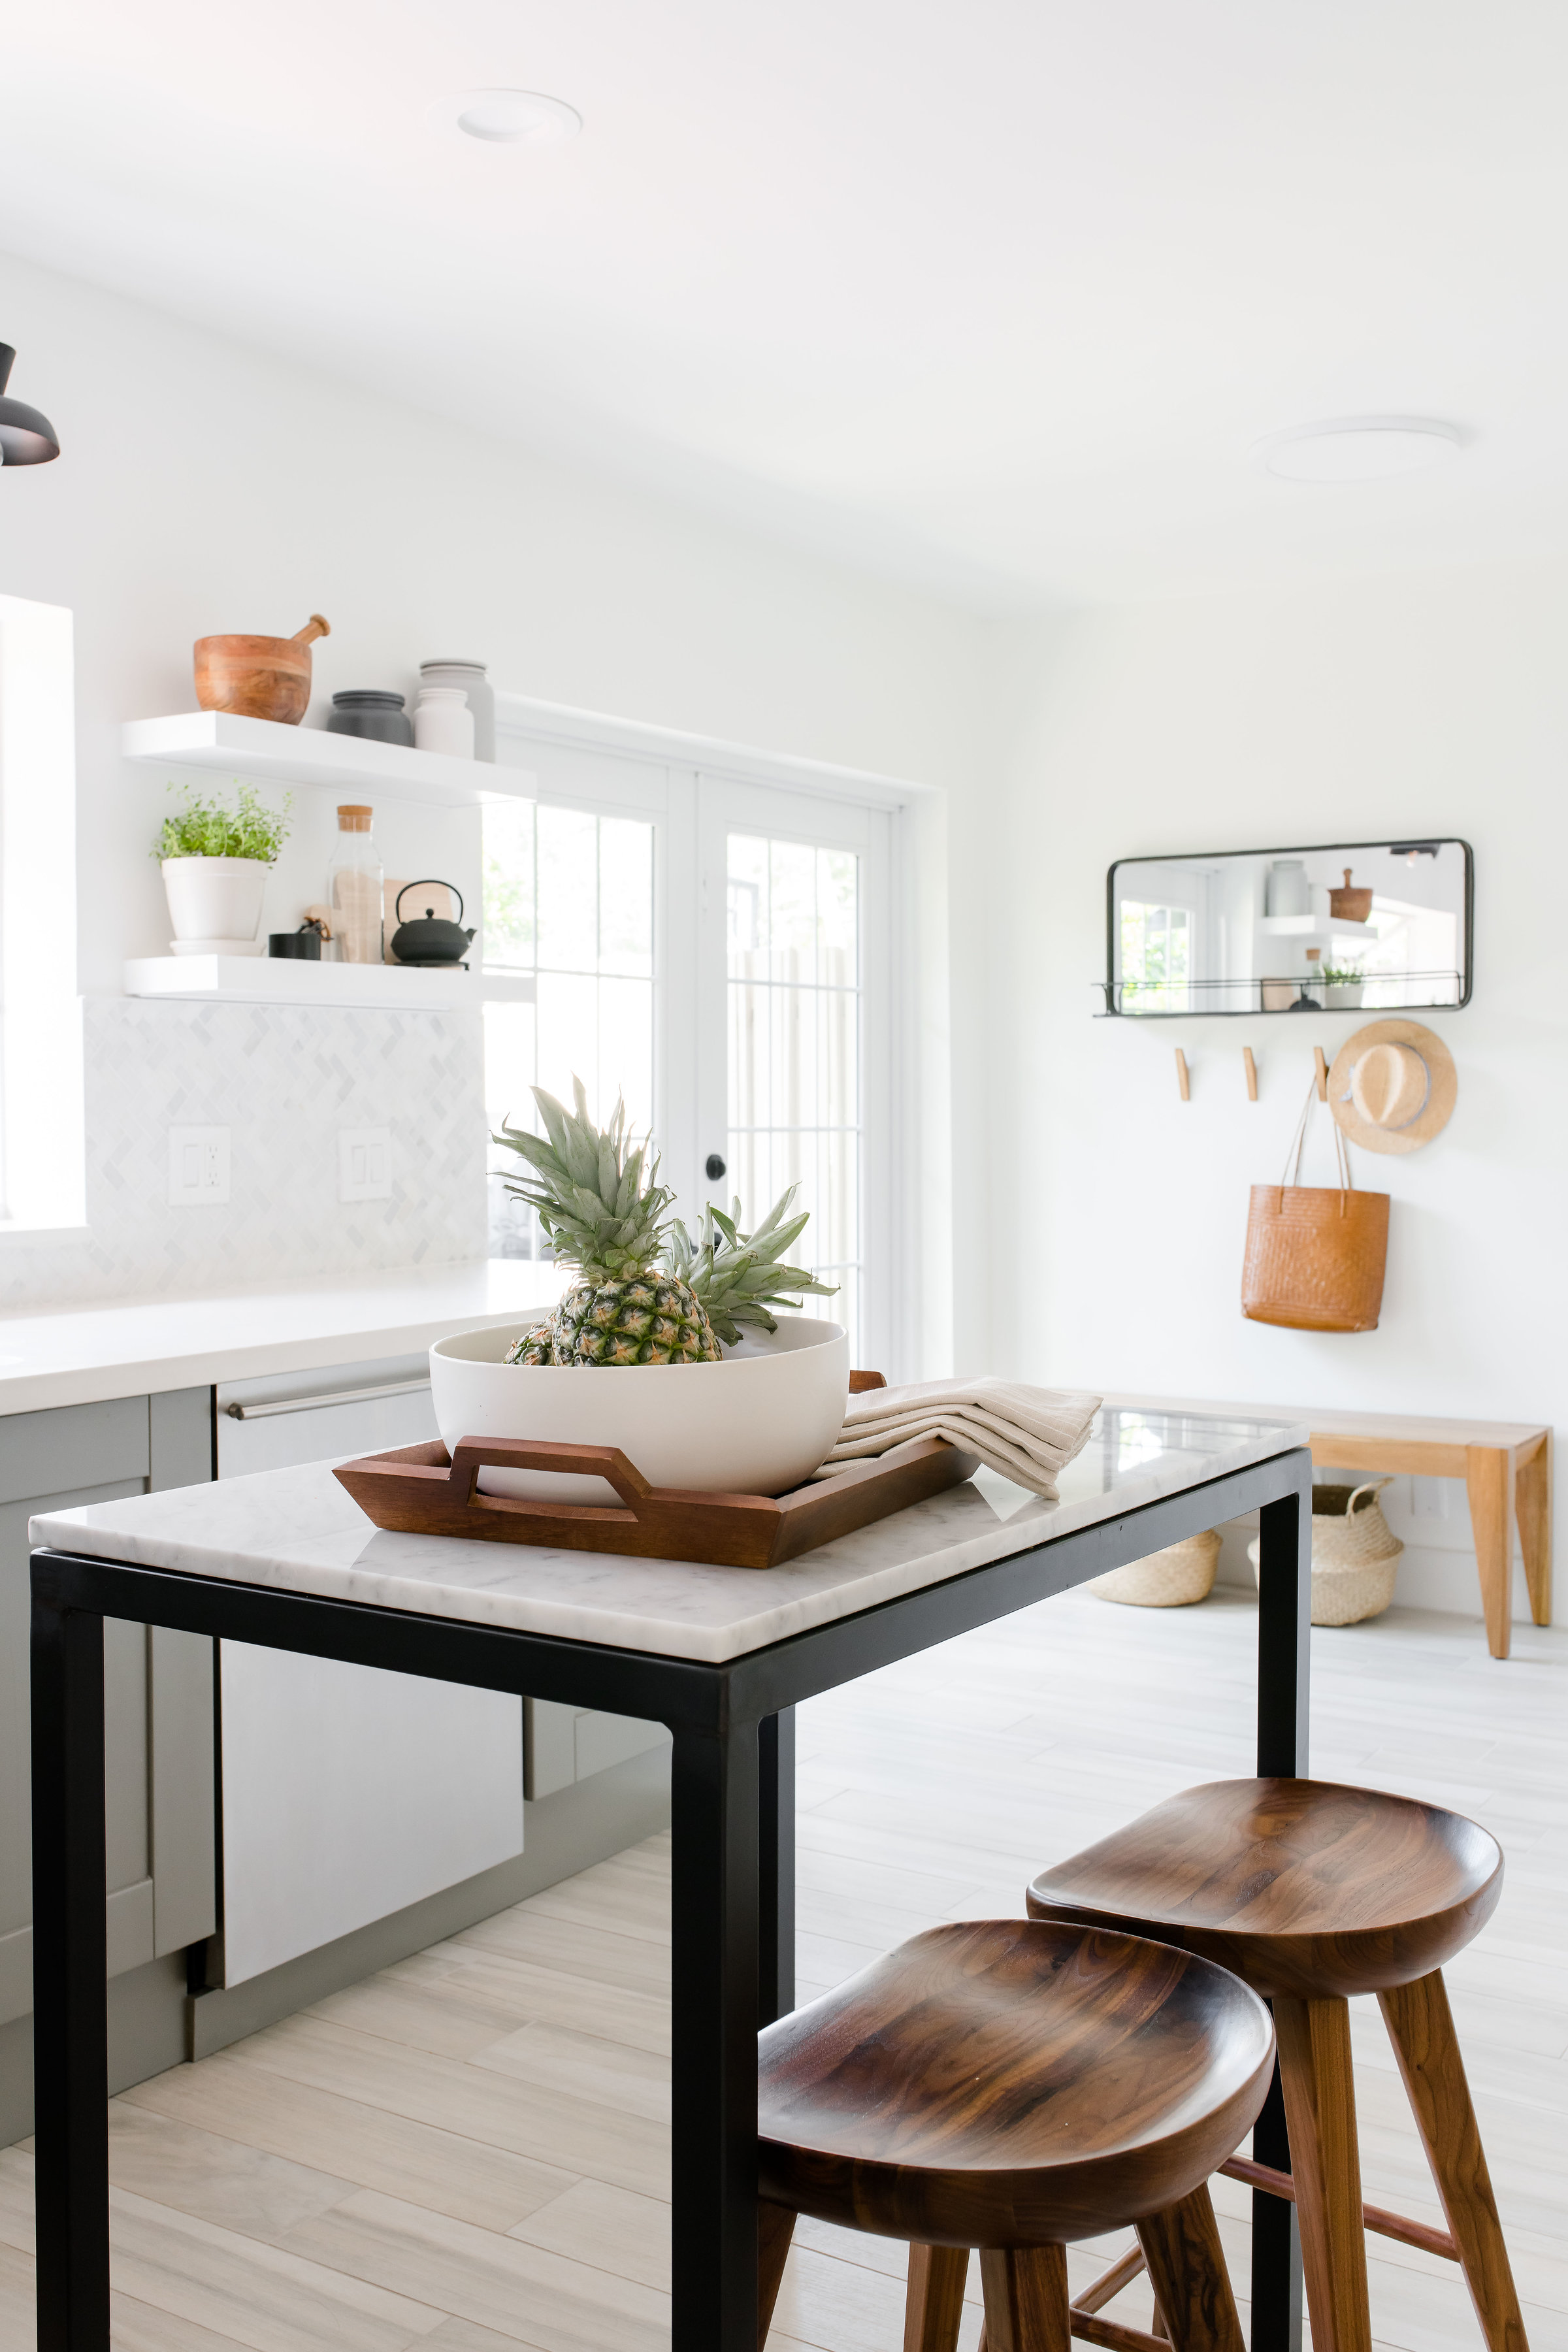 freestanding marble kitchen island - the habitat collective - project casinha linda